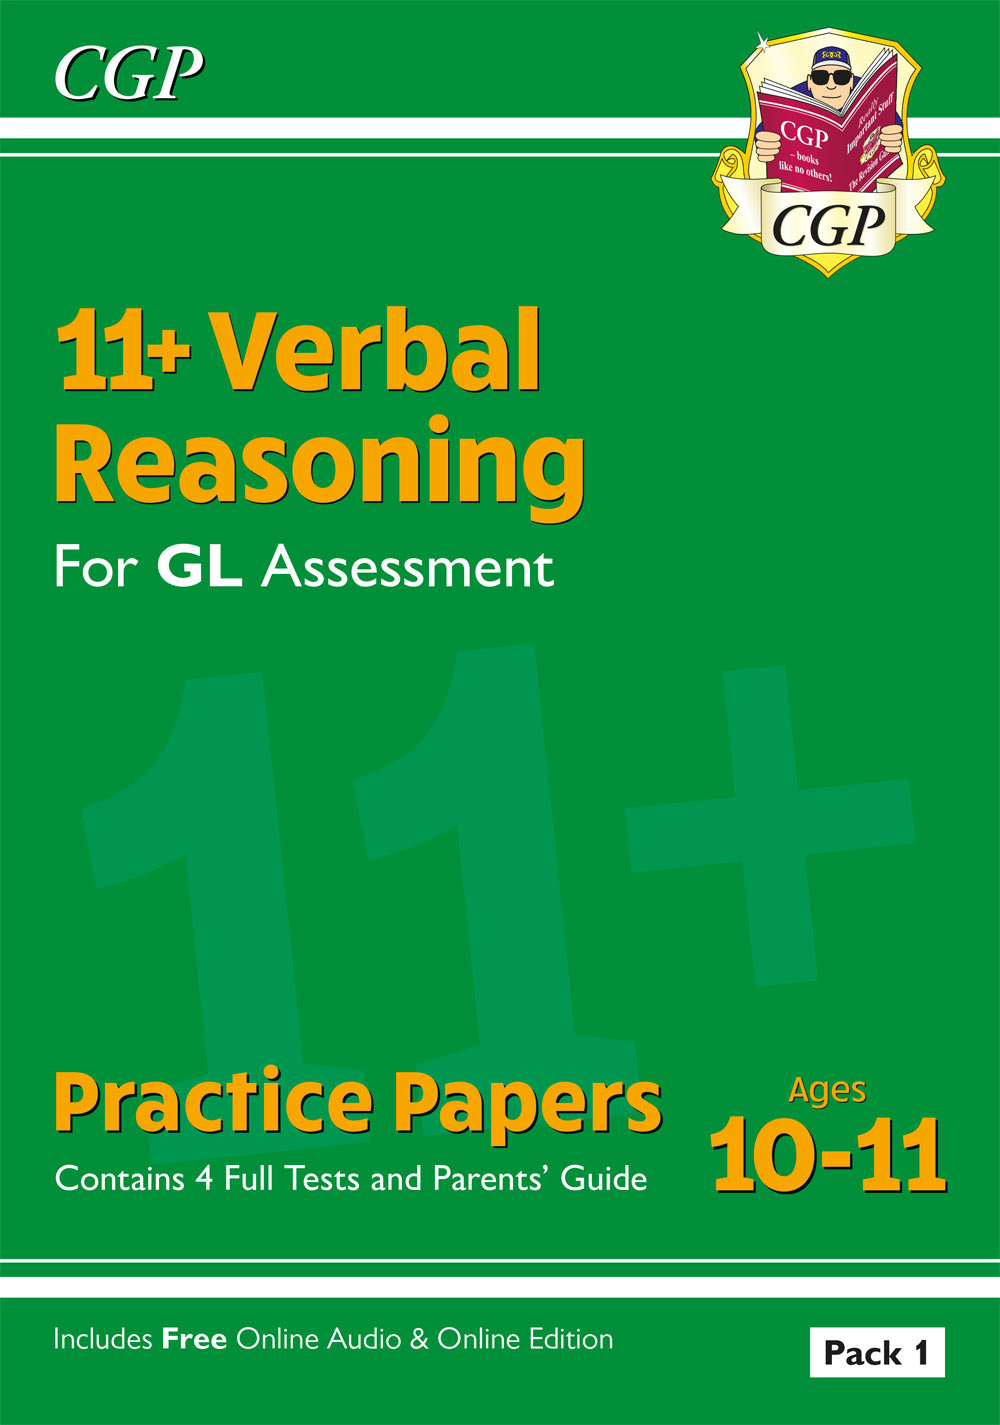 VHTE2 - New 11+ GL Verbal Reasoning Practice Papers: Ages 10-11 - Pack 1 (with Parents' Guide & Onli